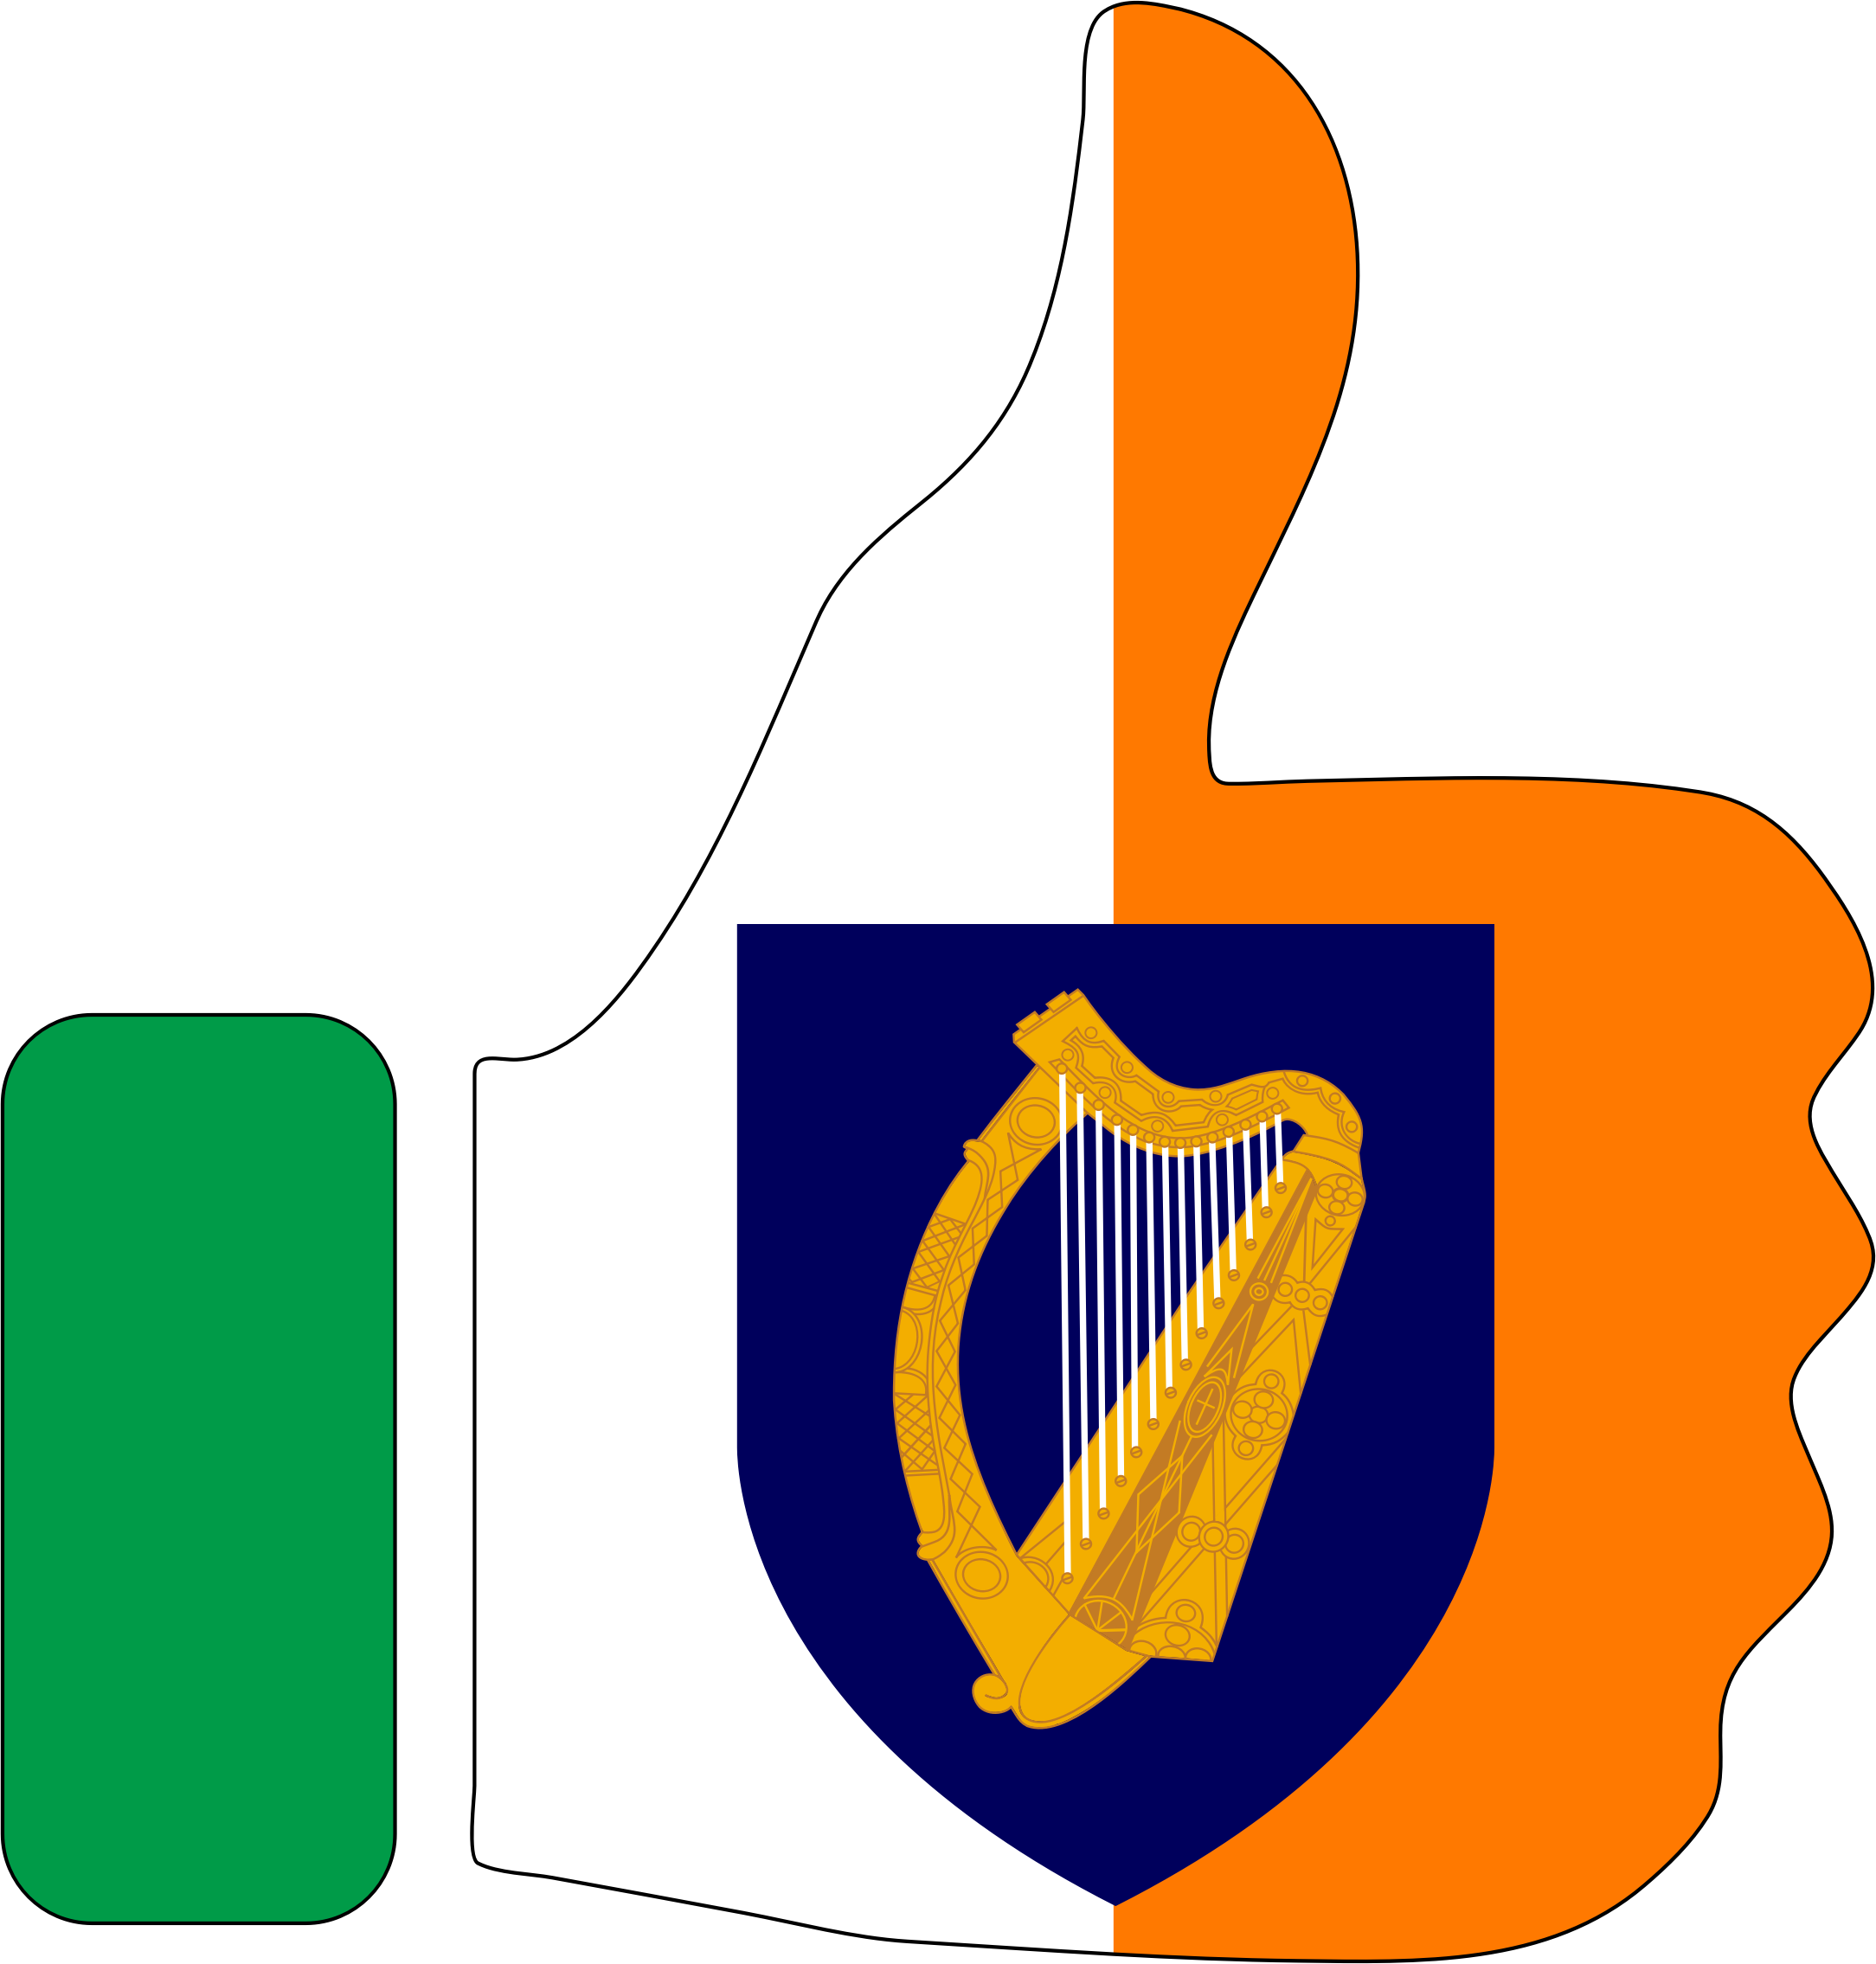 Thumbs Up Ireland With Stroke And Coat Of Arms by GDJ